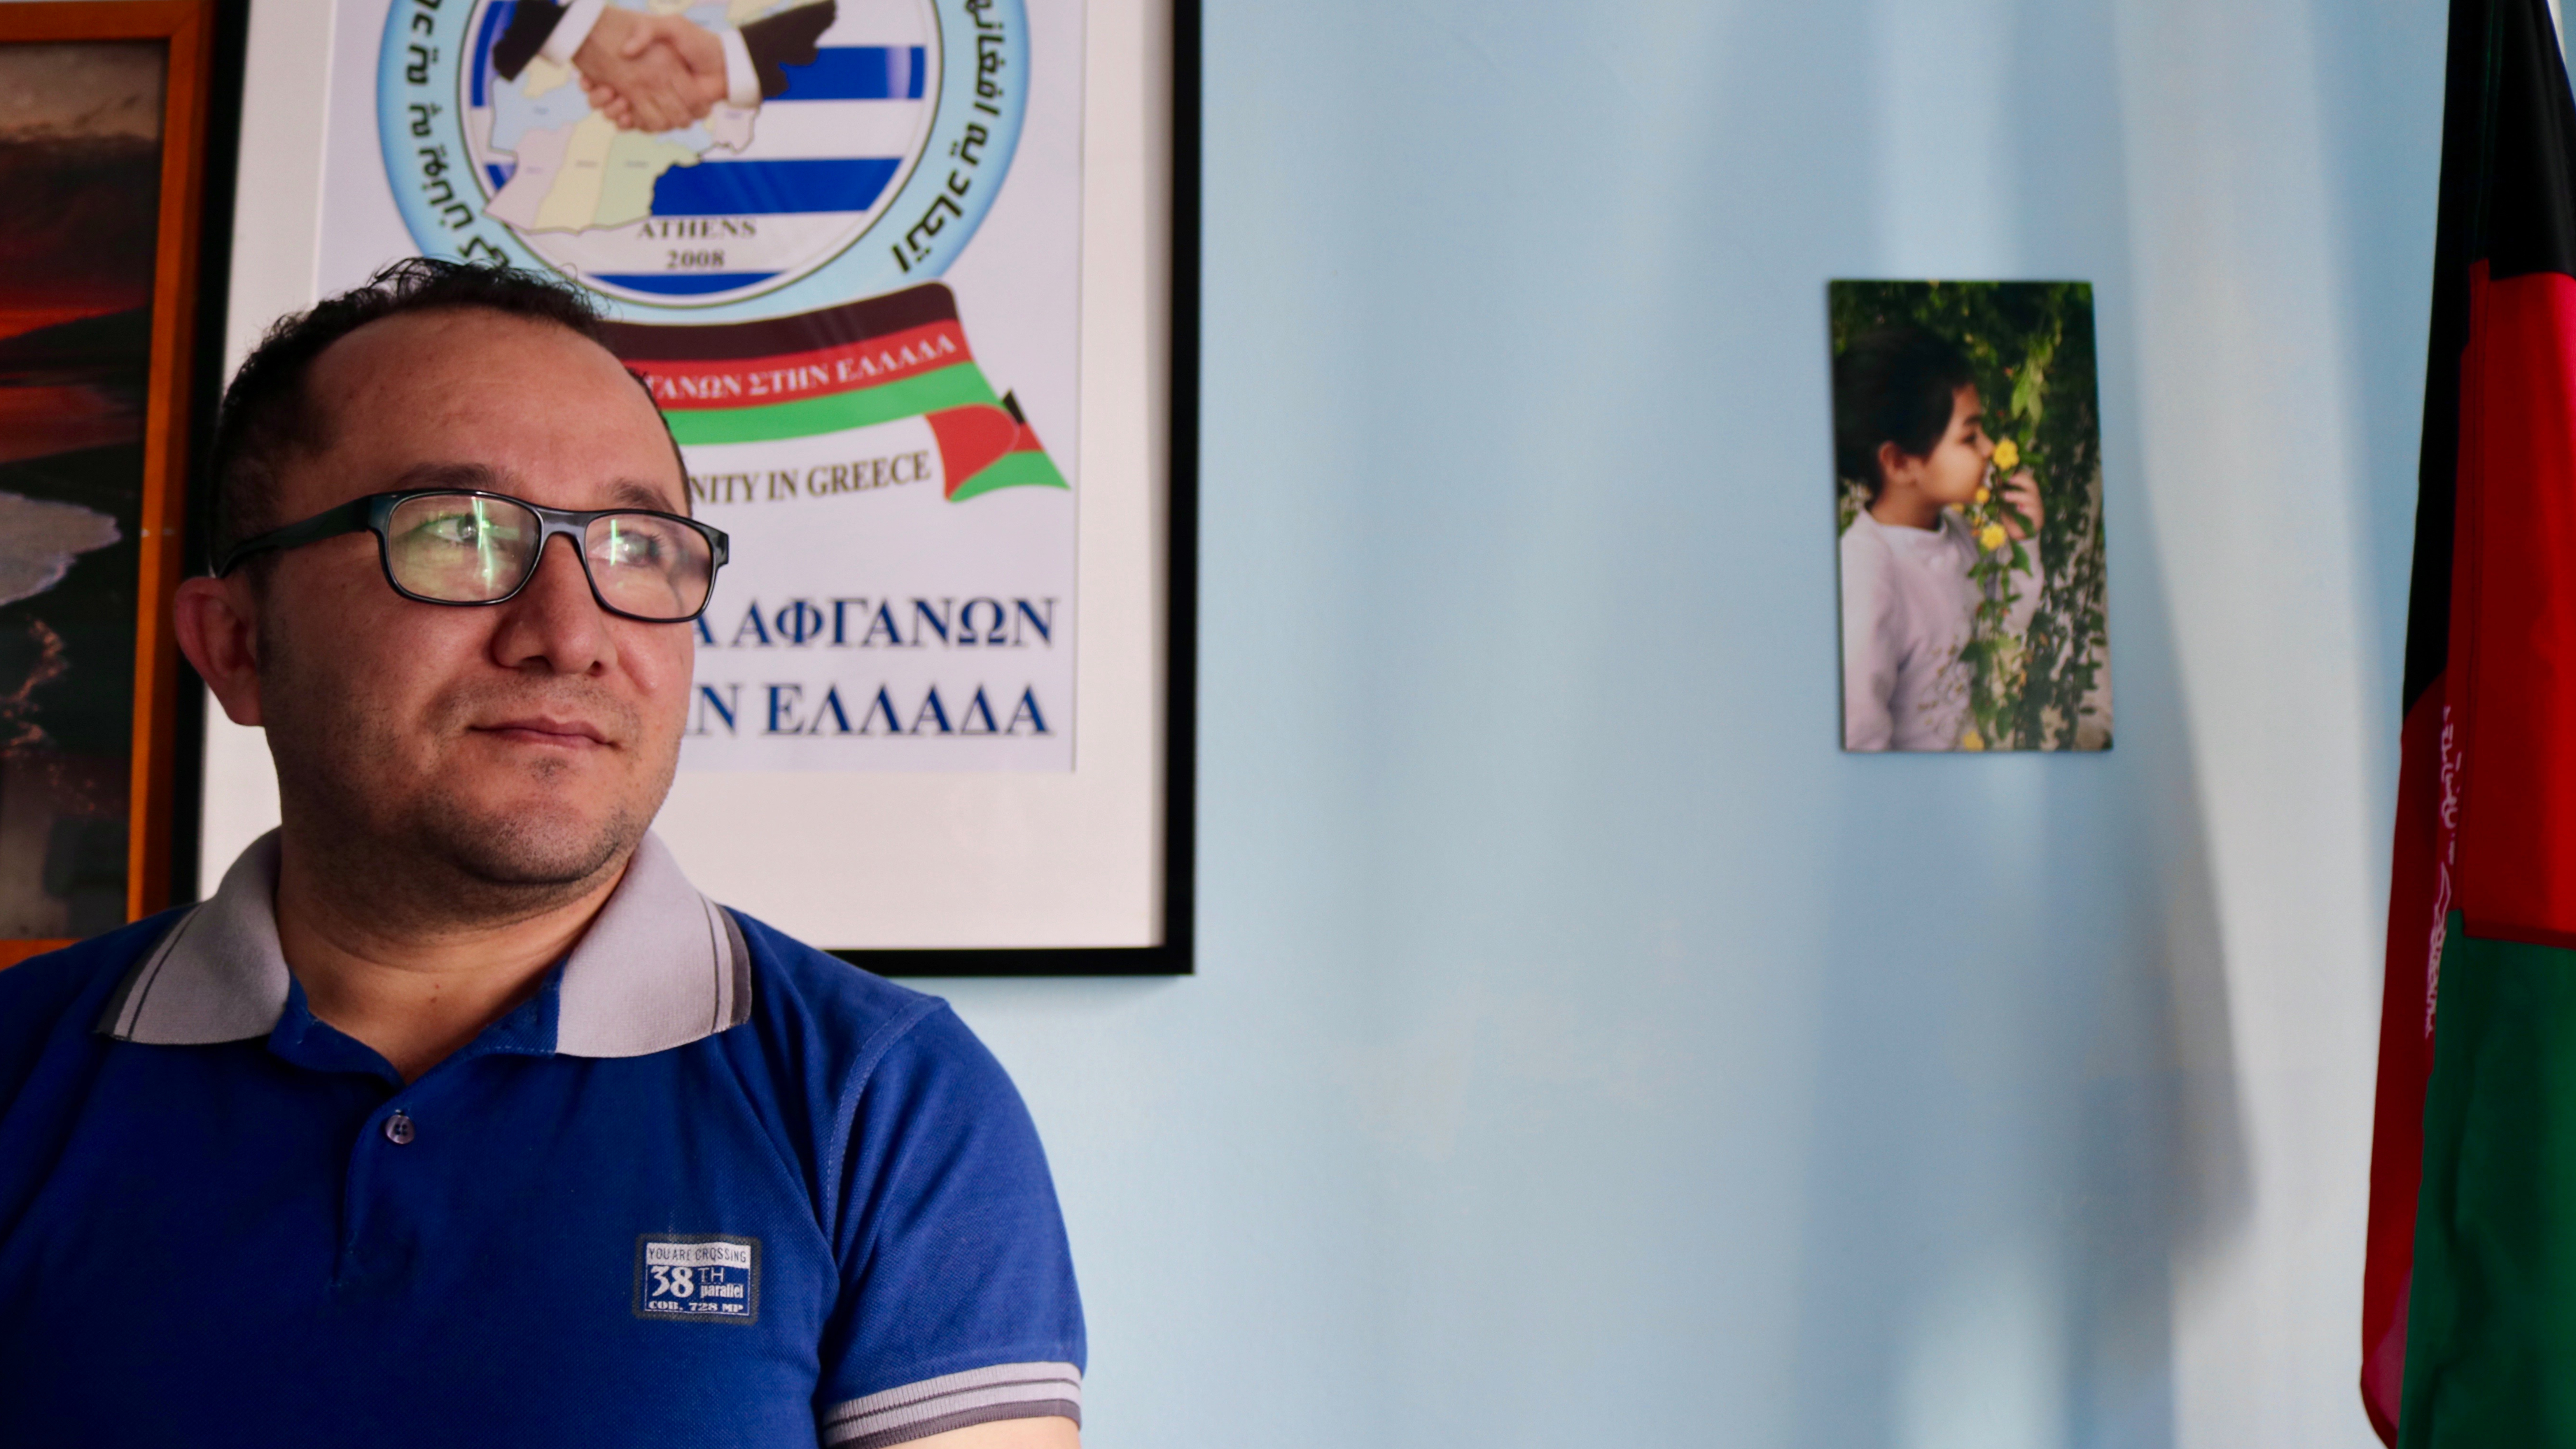 A man wears a blue shirt and glasses in an office